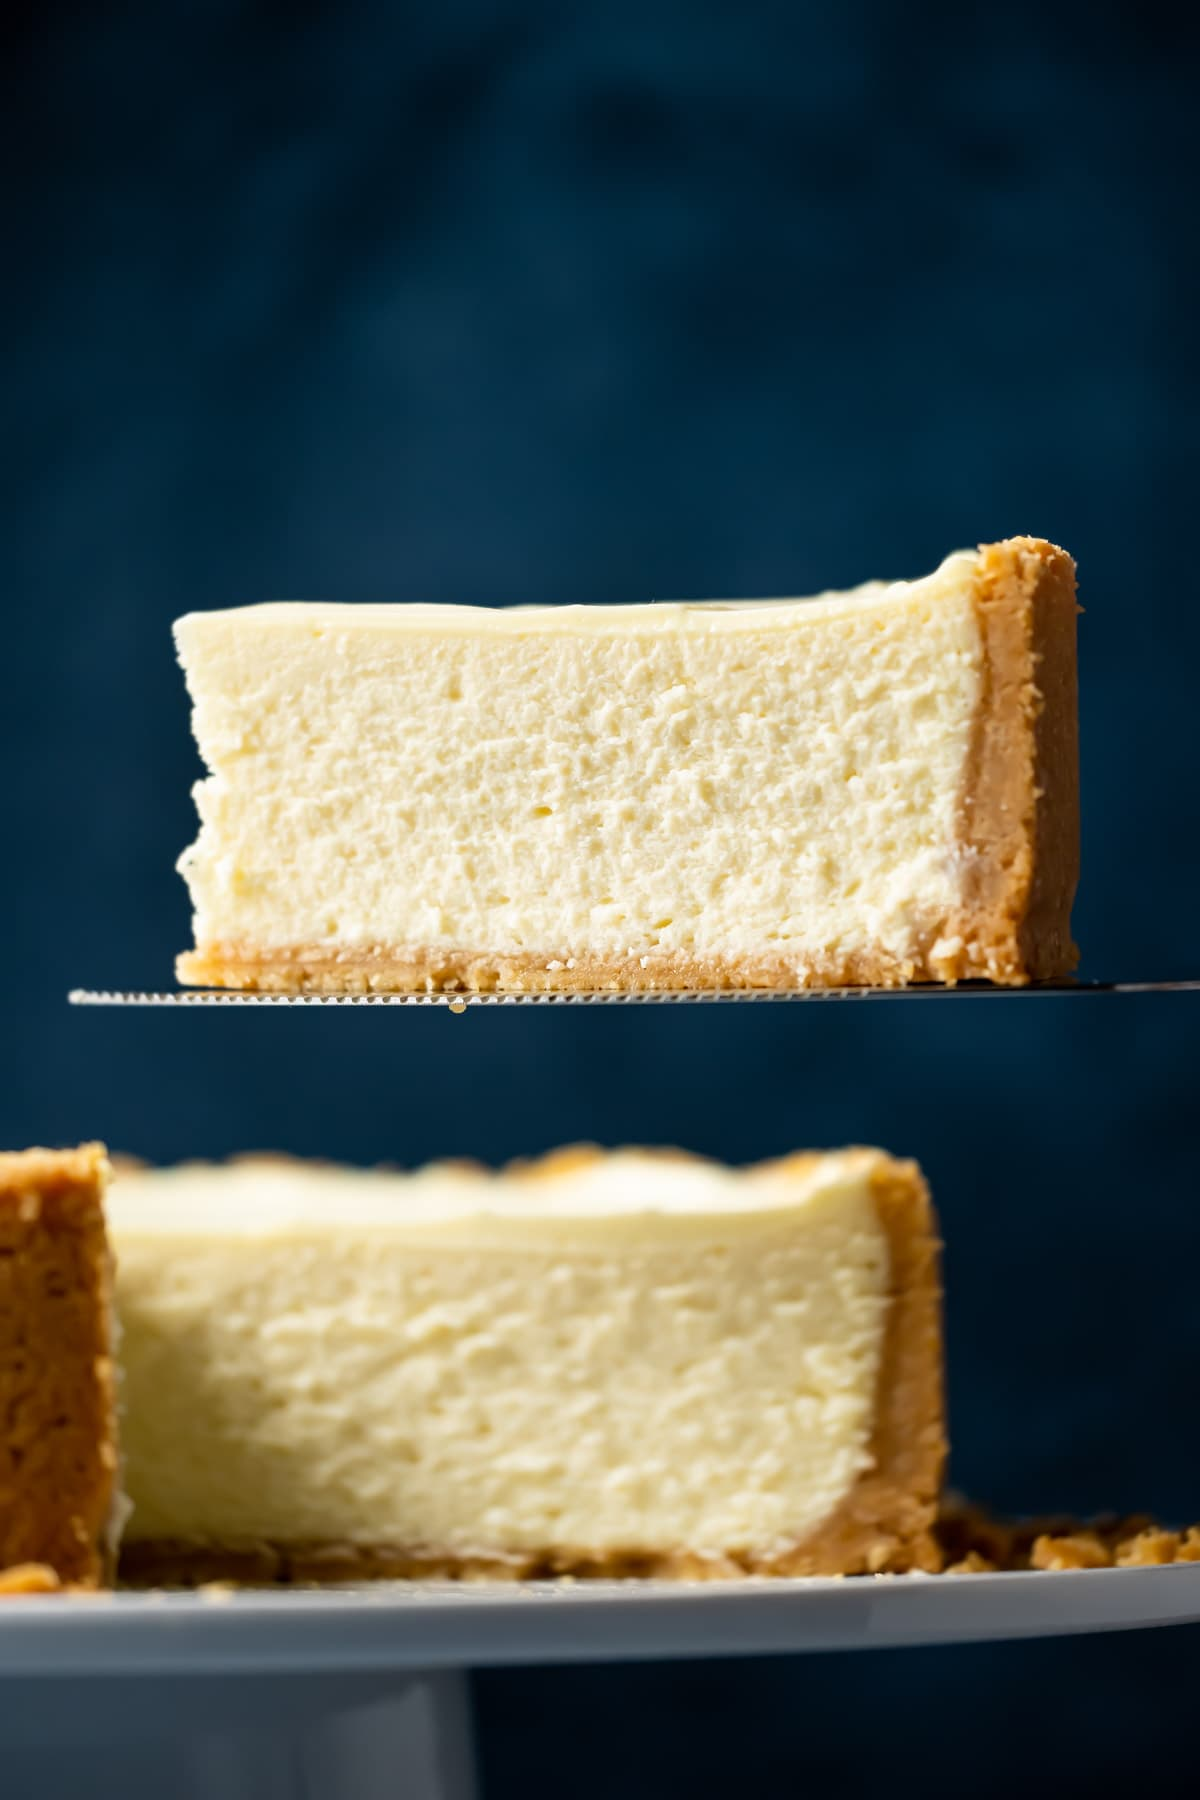 Slice of eggless cheesecake on a cake lifter.